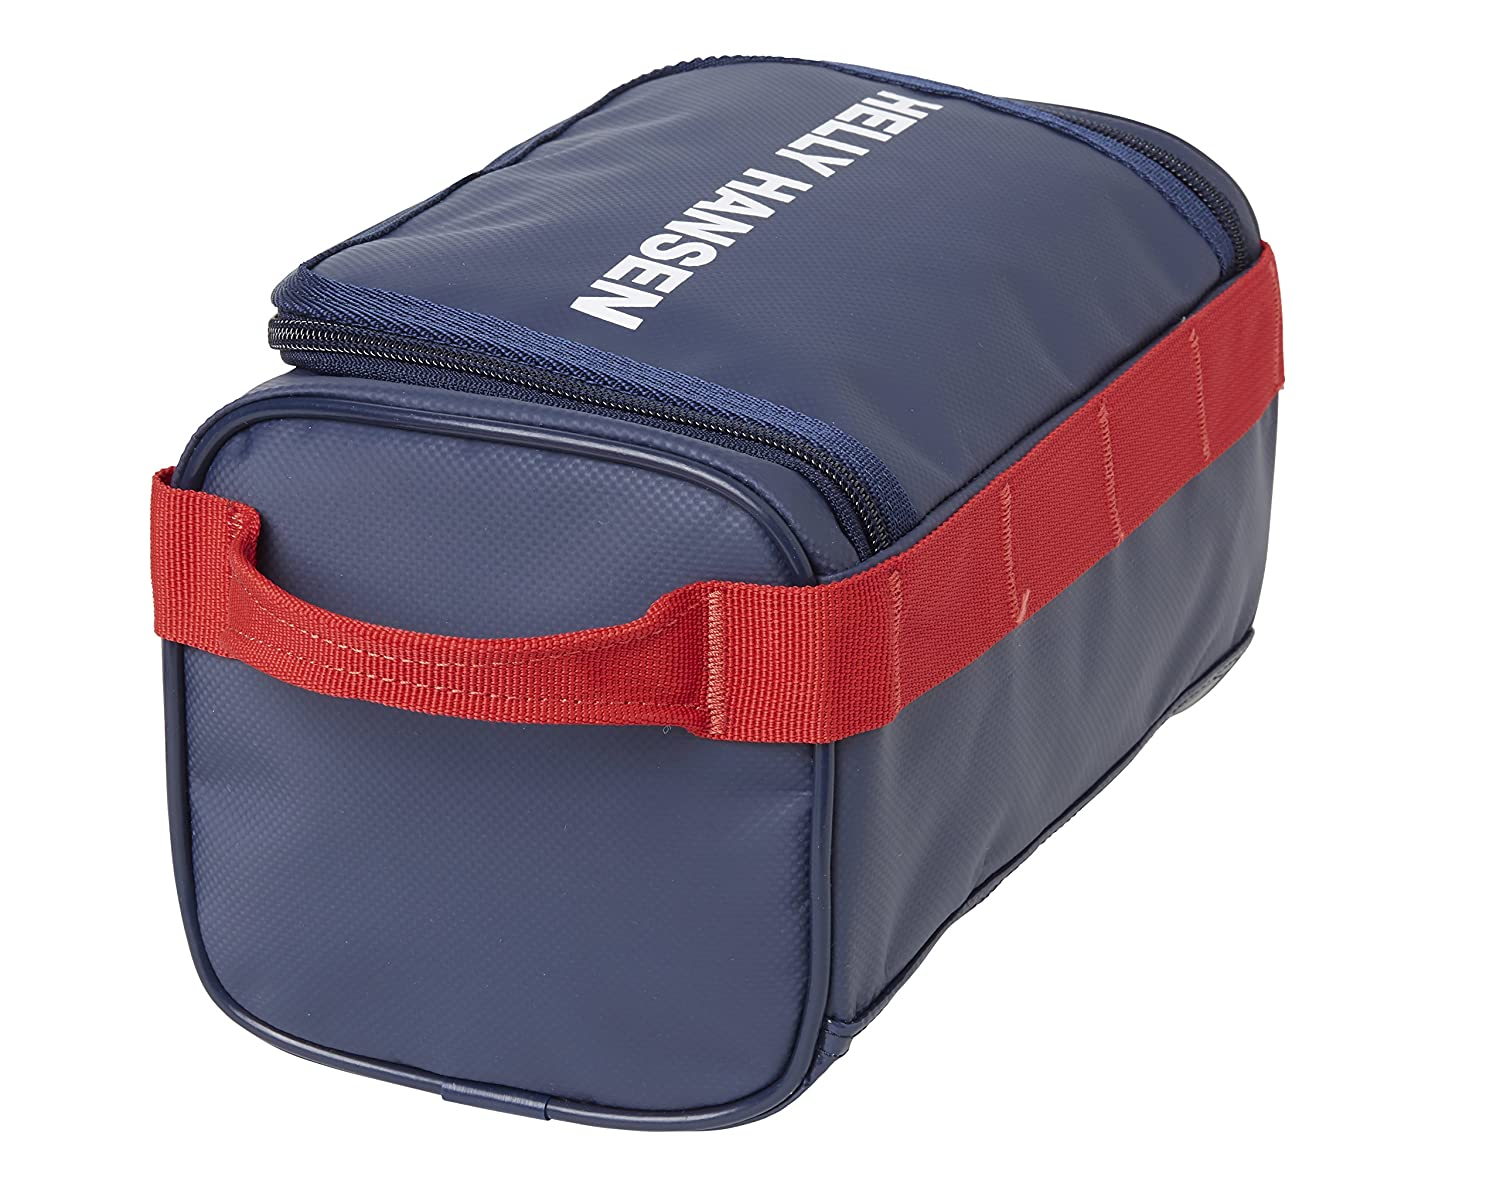 c98800599 Helly Hansen HH New Classic Wash Bag Neceser, 25 cm, Plum 67170